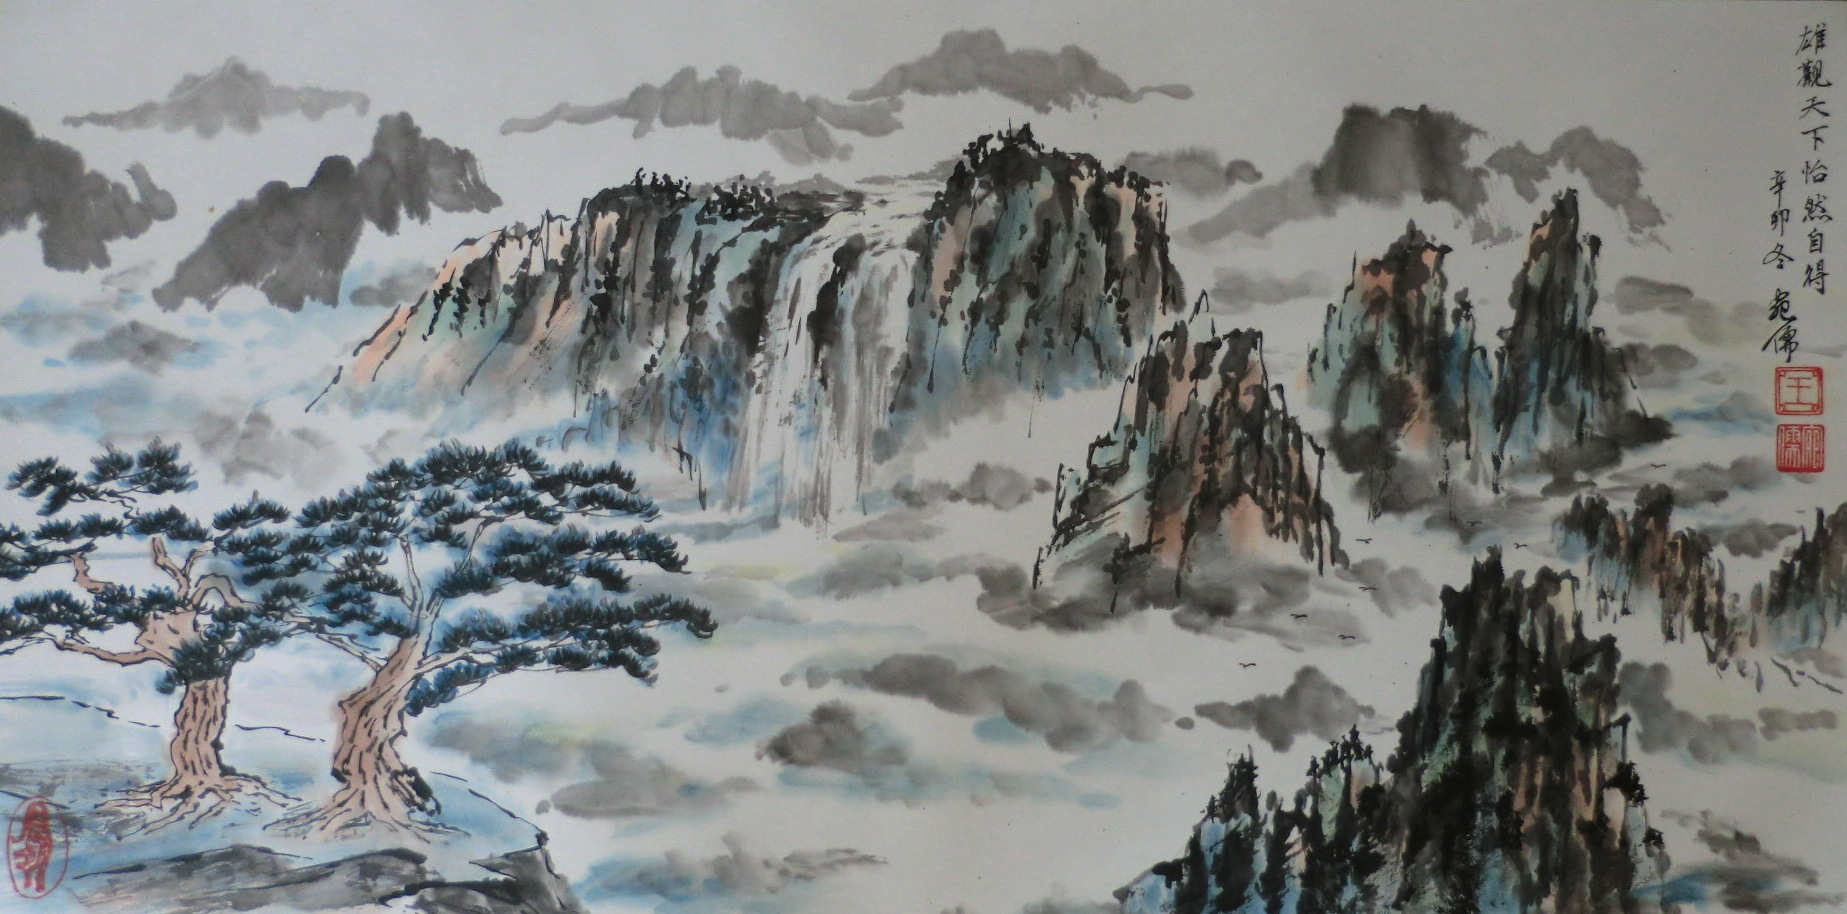 Sea of Clouds (Commissioned artwork)